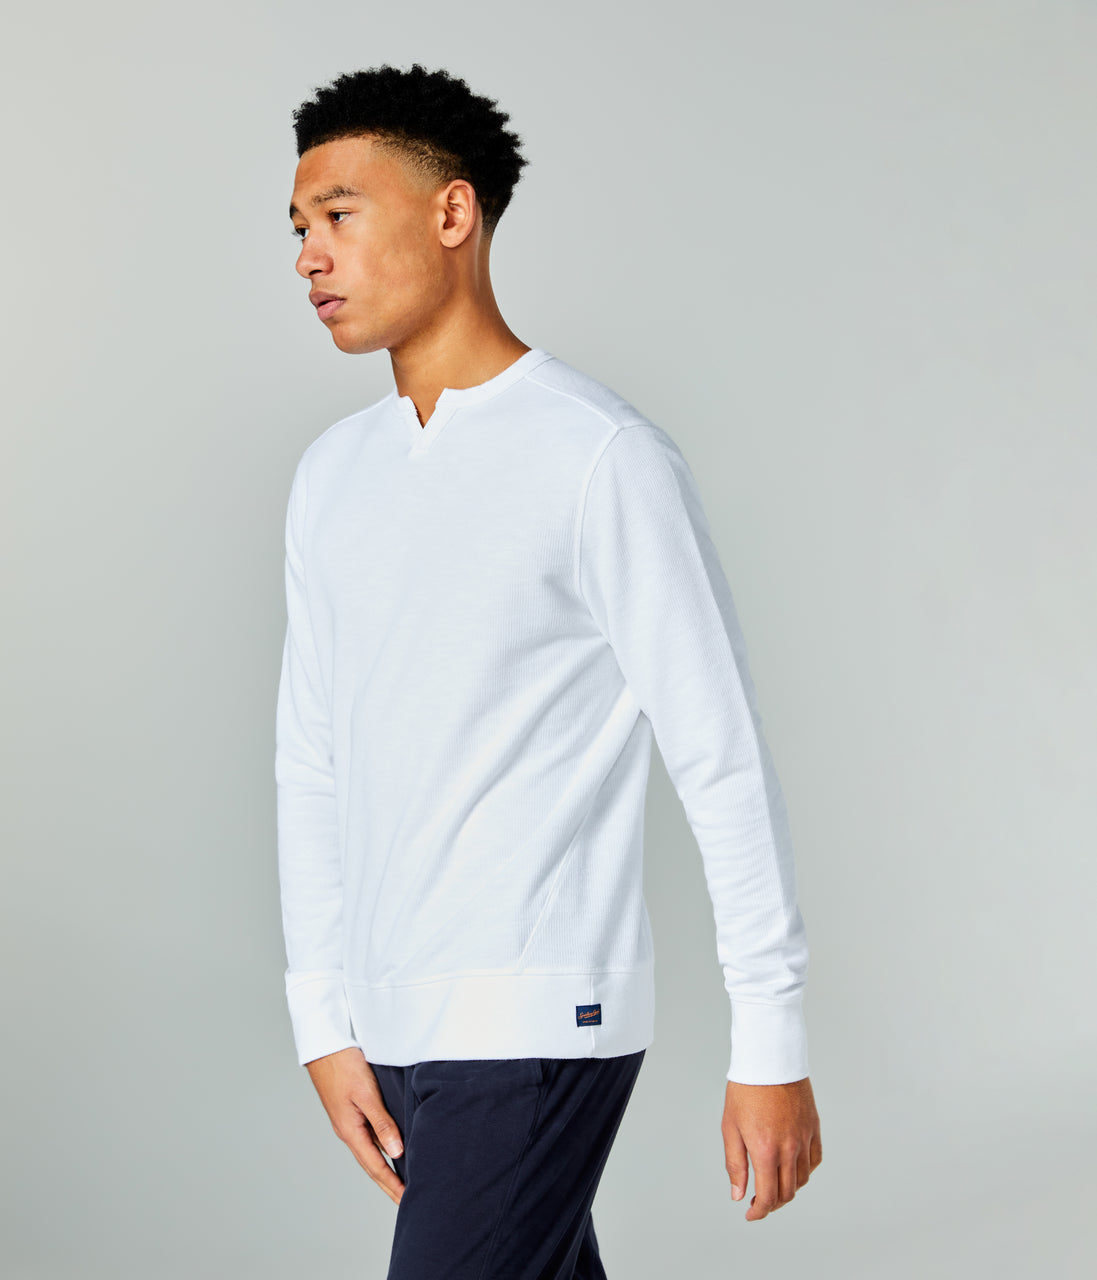 Victory V-Notch Sweatshirt - White - Good Man Brand - Victory V-Notch Sweatshirt - White